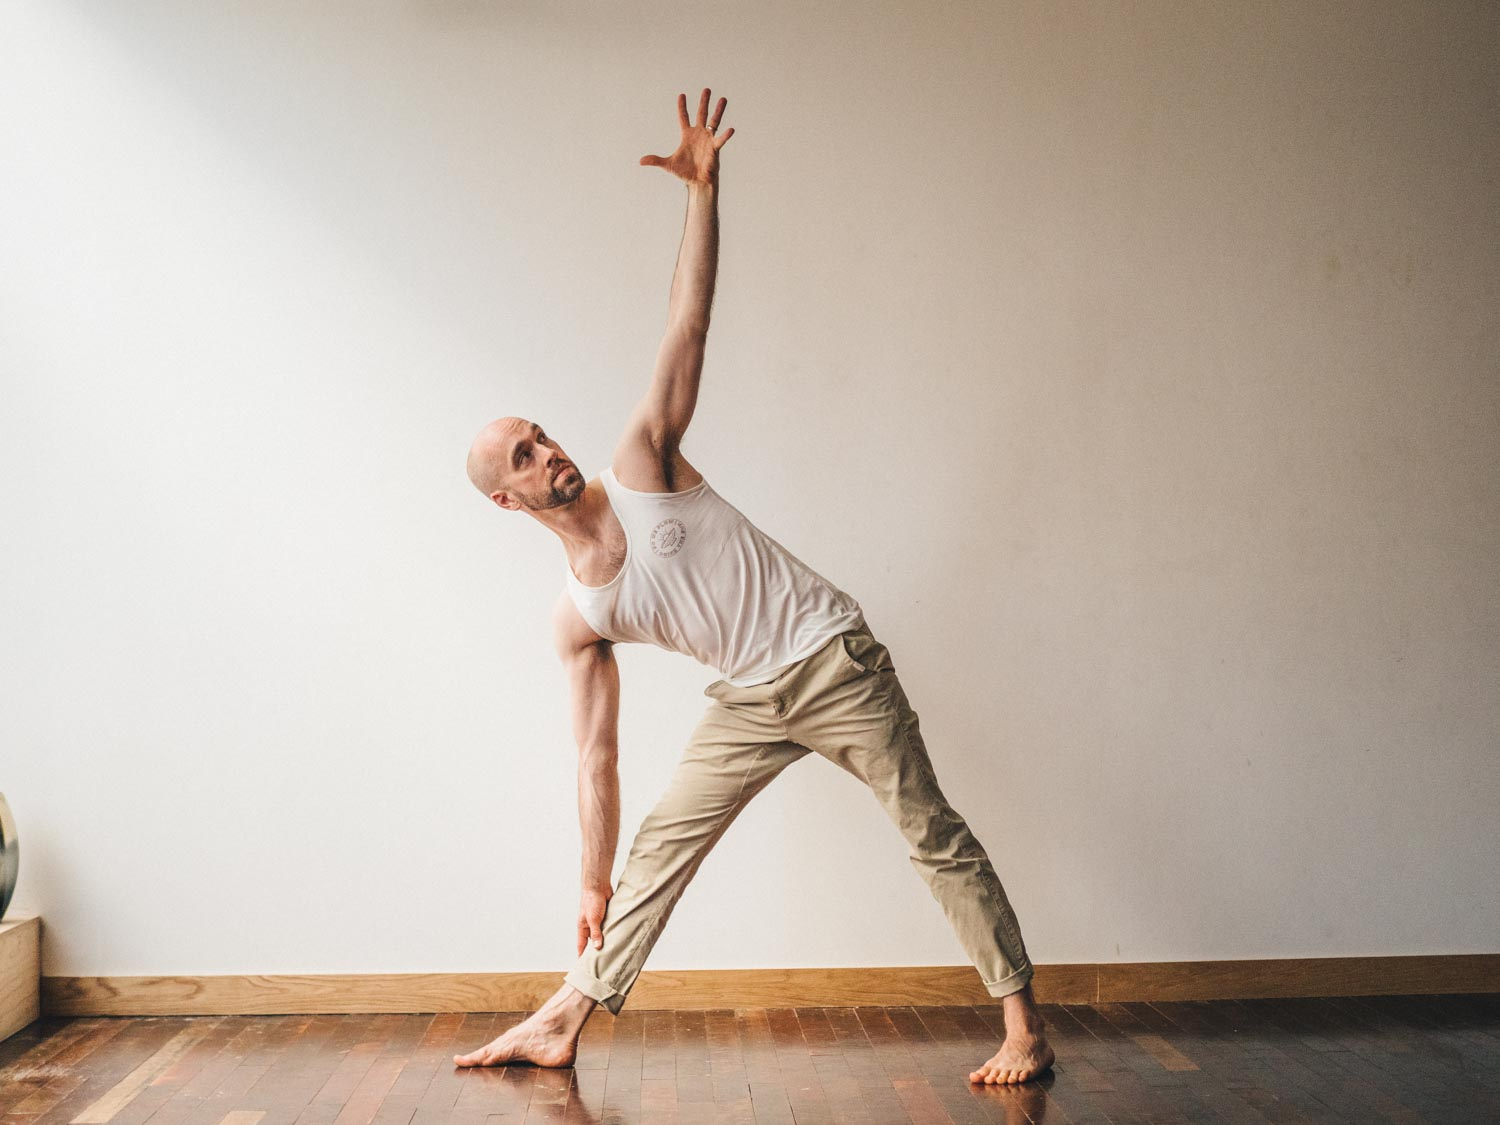 Man doing Uttihita Trikonasana or extended triangle pose yoga pose